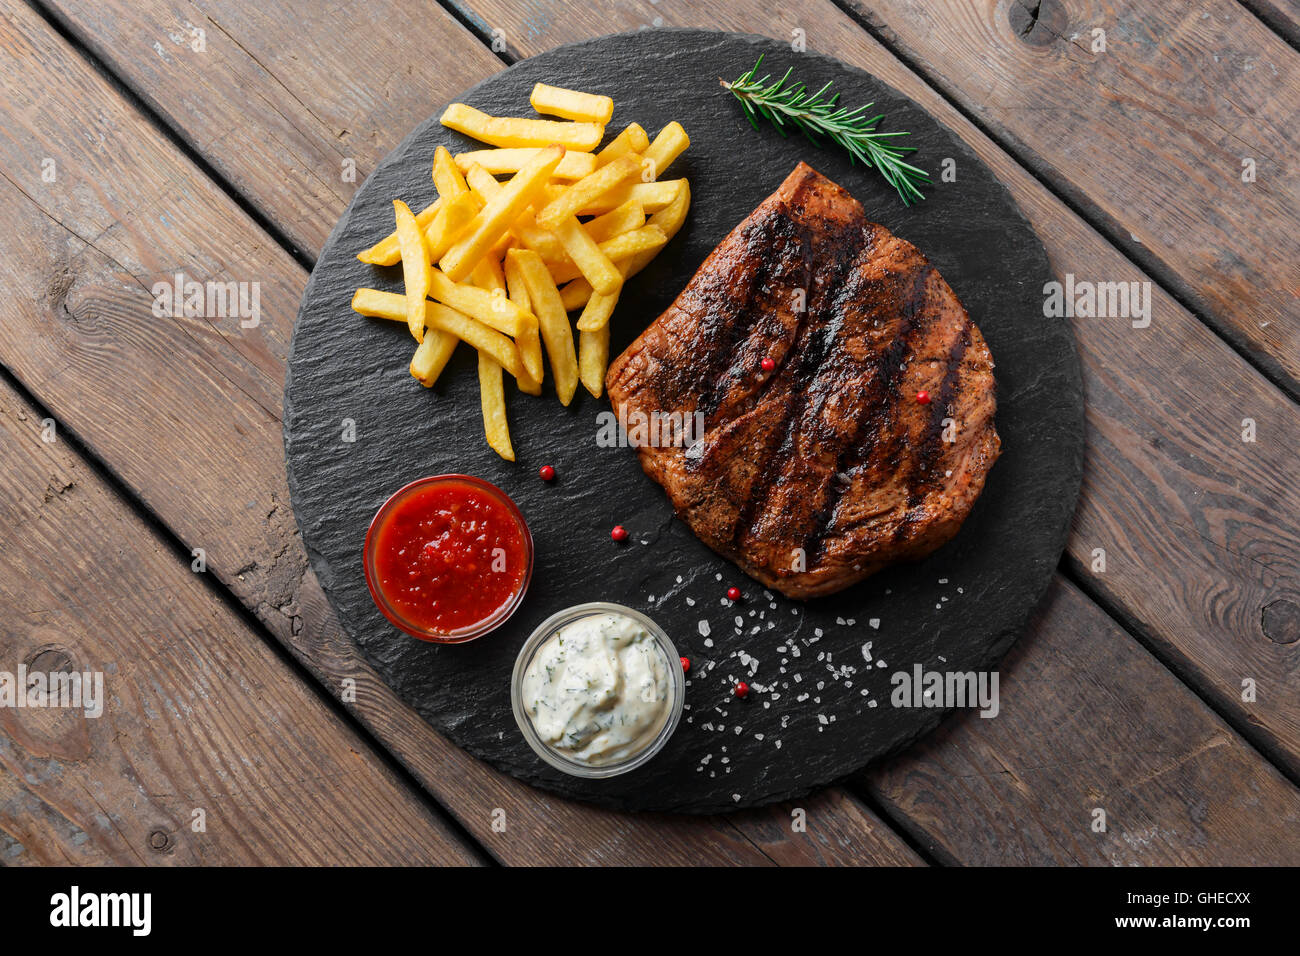 Beef steak with french fries and sauce - Stock Image